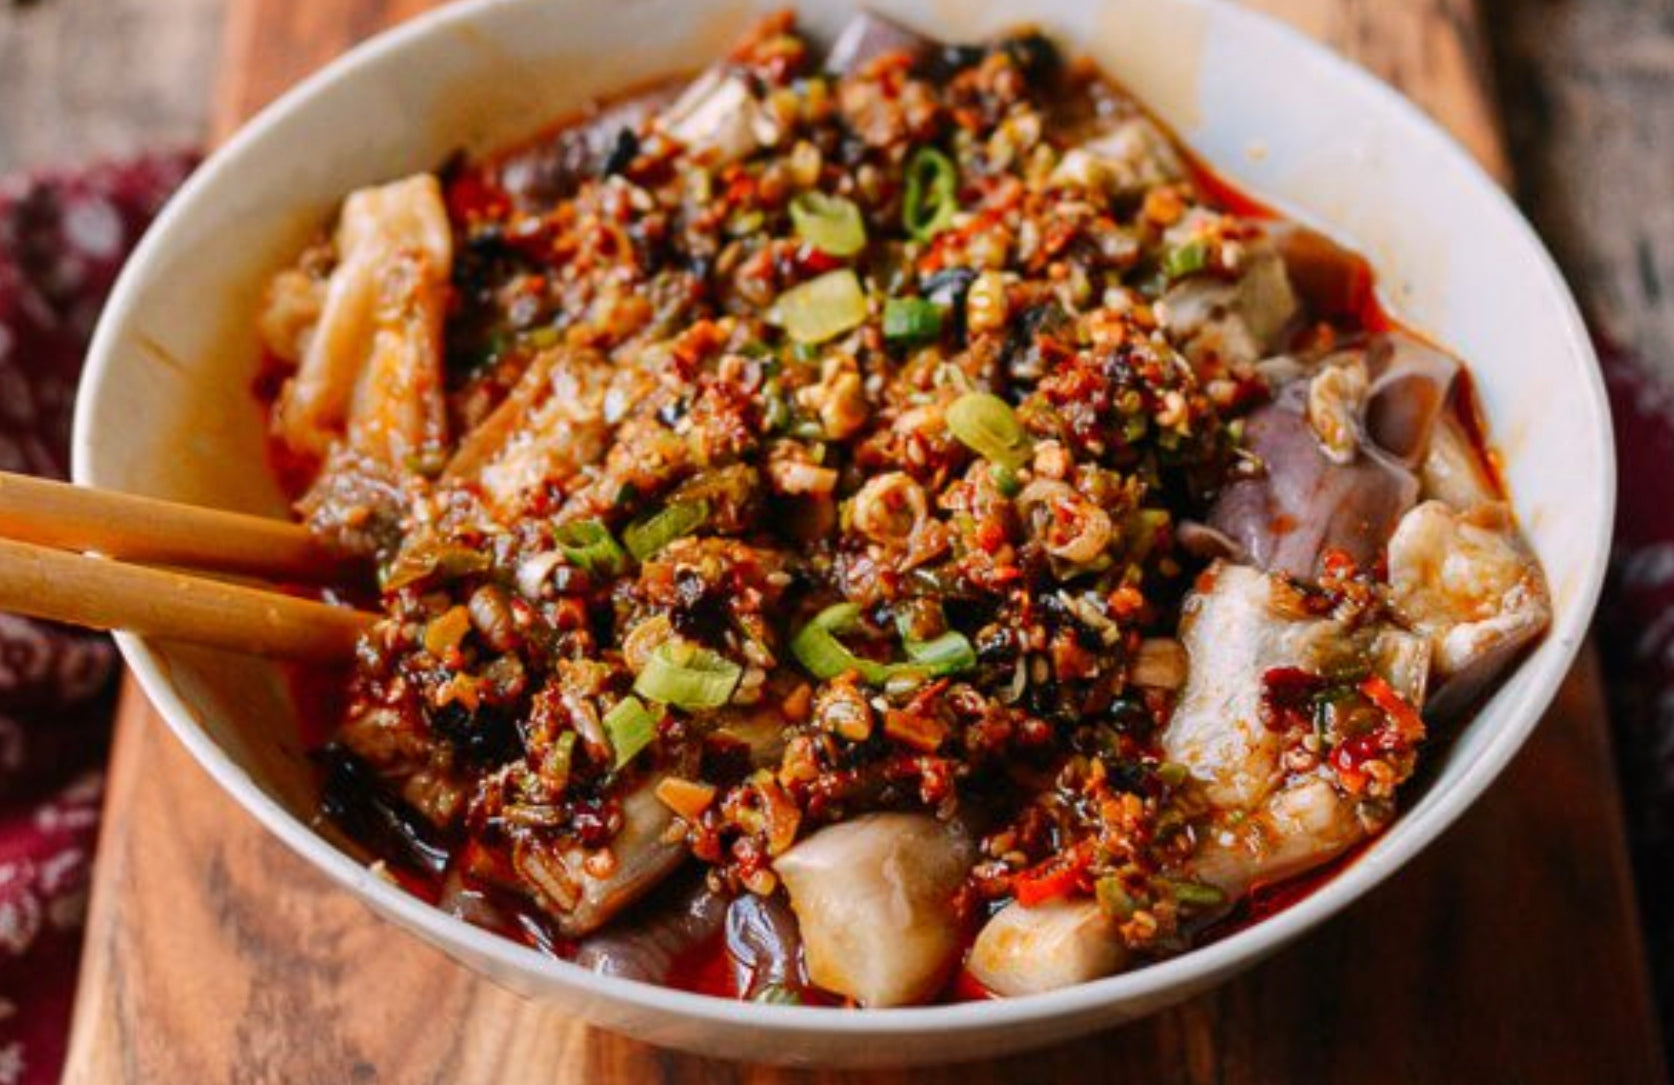 Steamed Eggplant In Hunan Chili Sauce